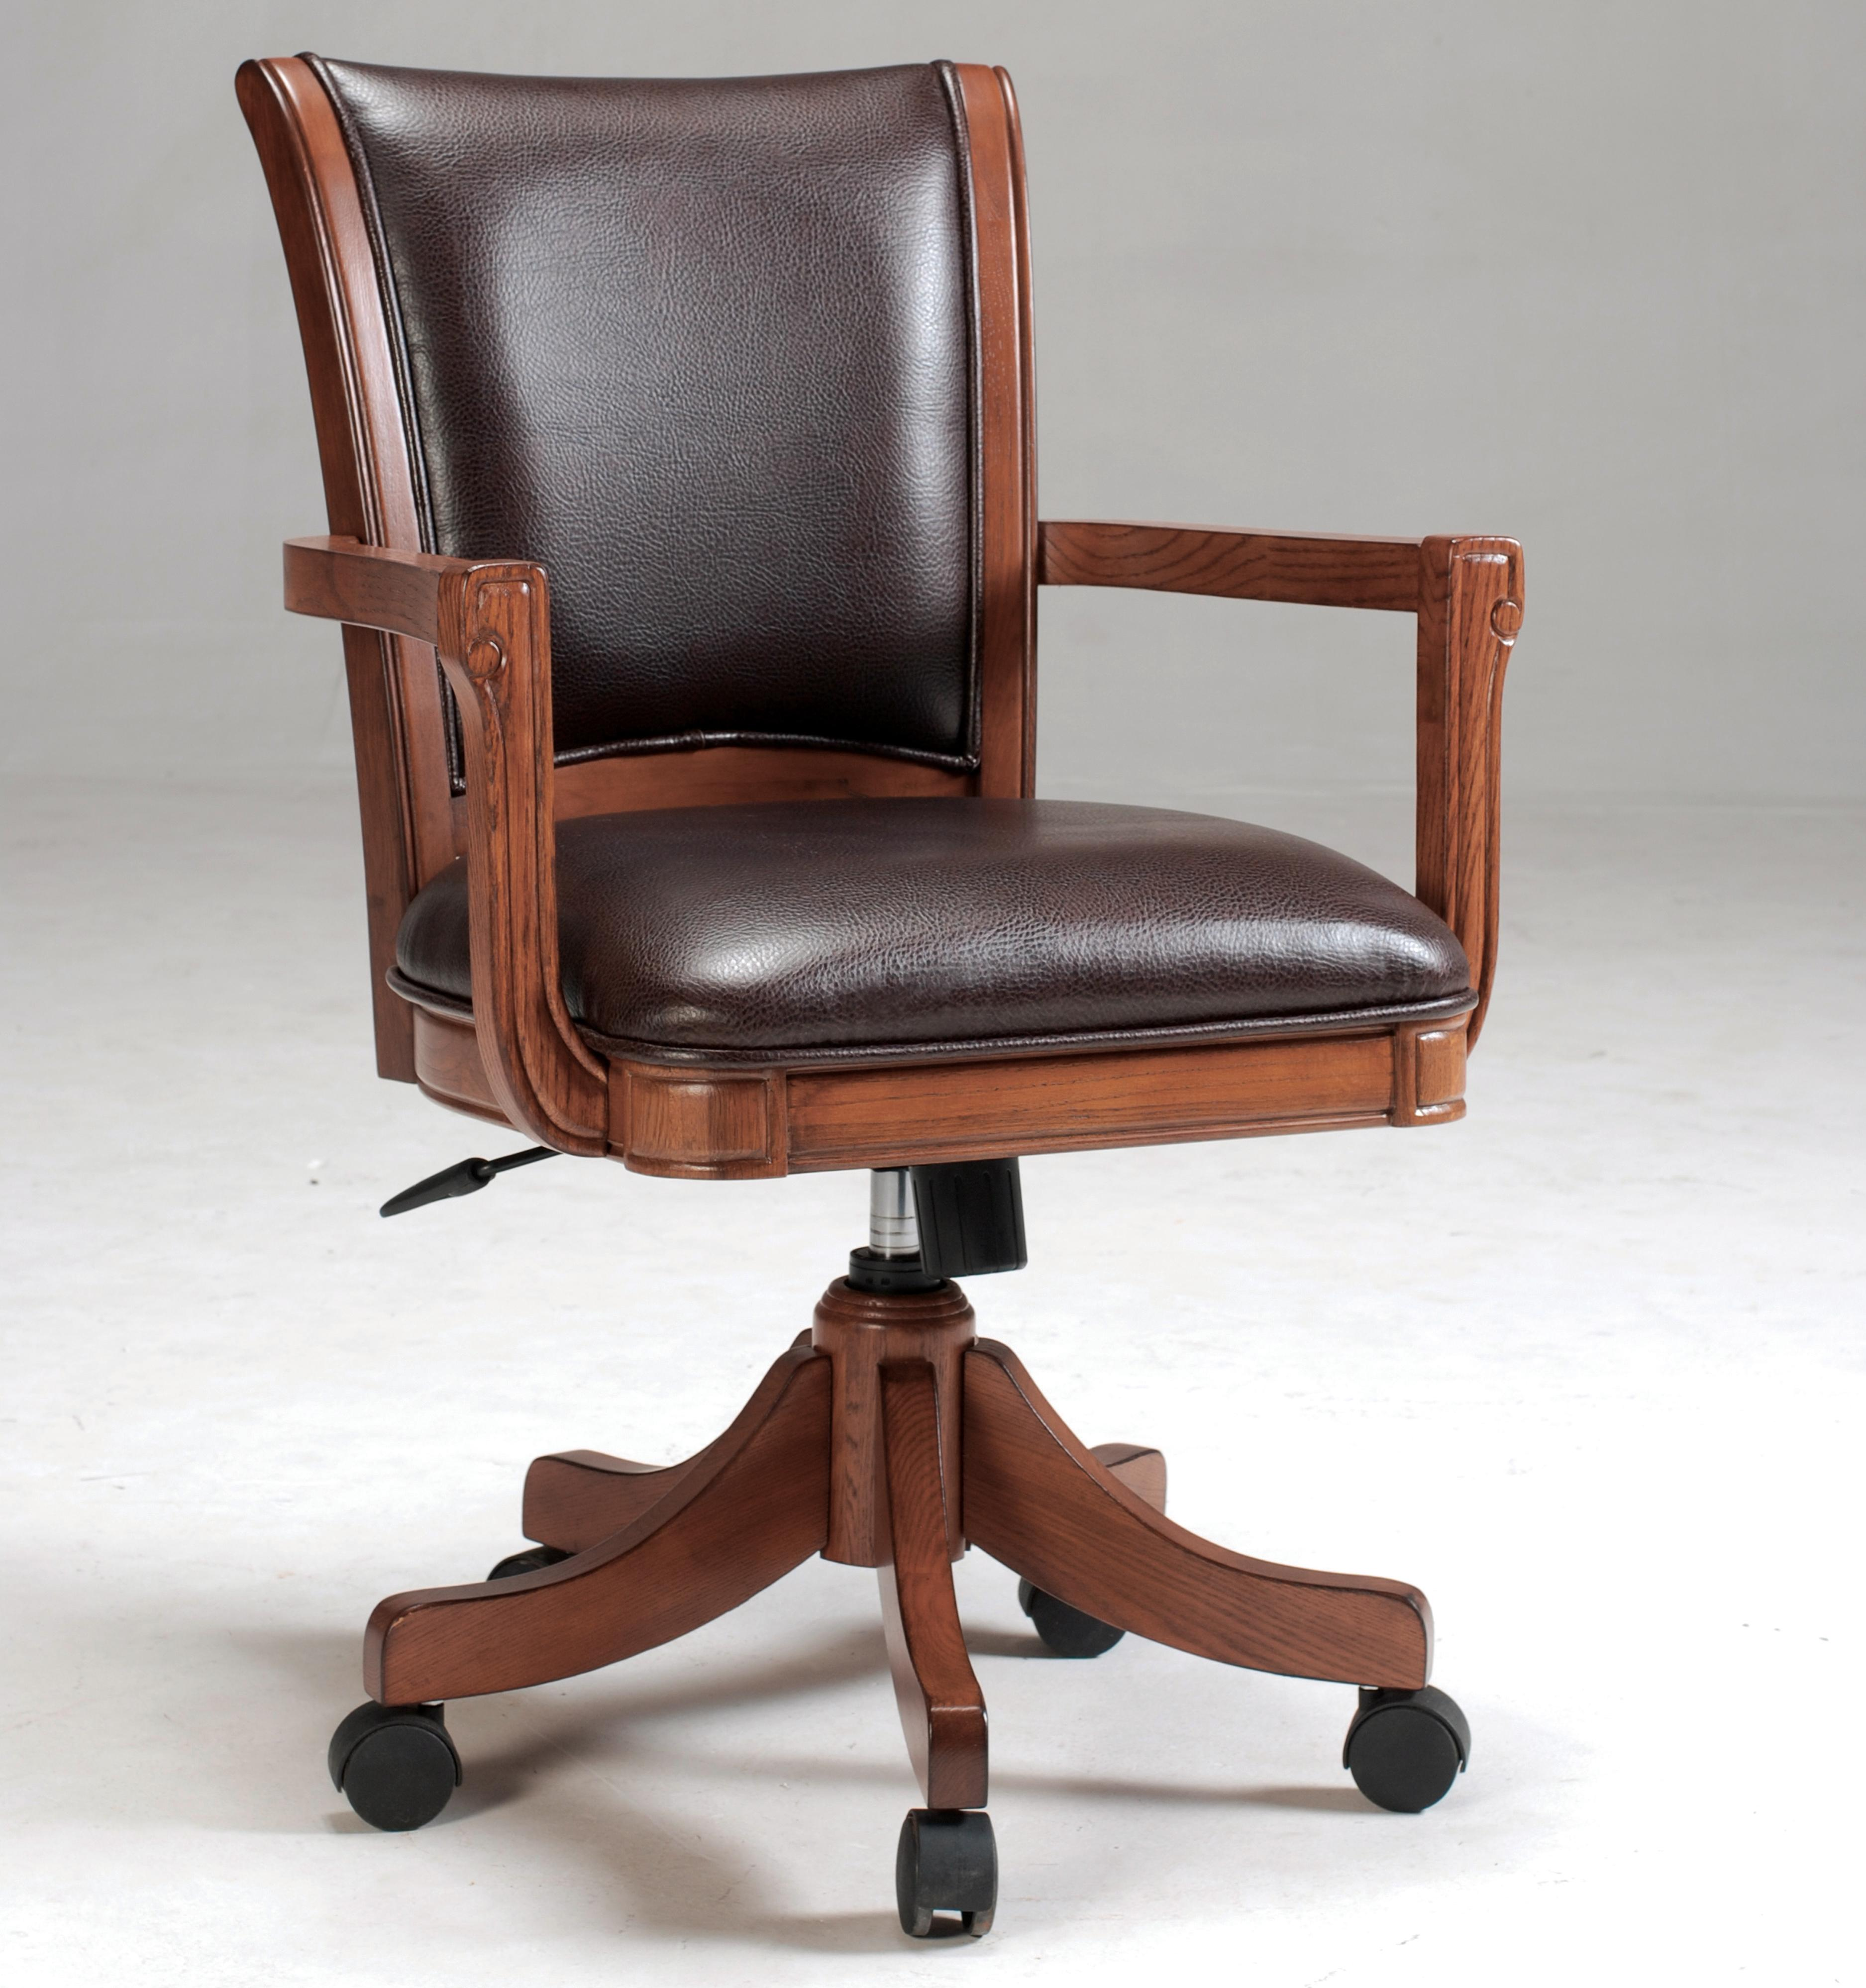 Hillsdale Park View Upholstered Chair with Casters